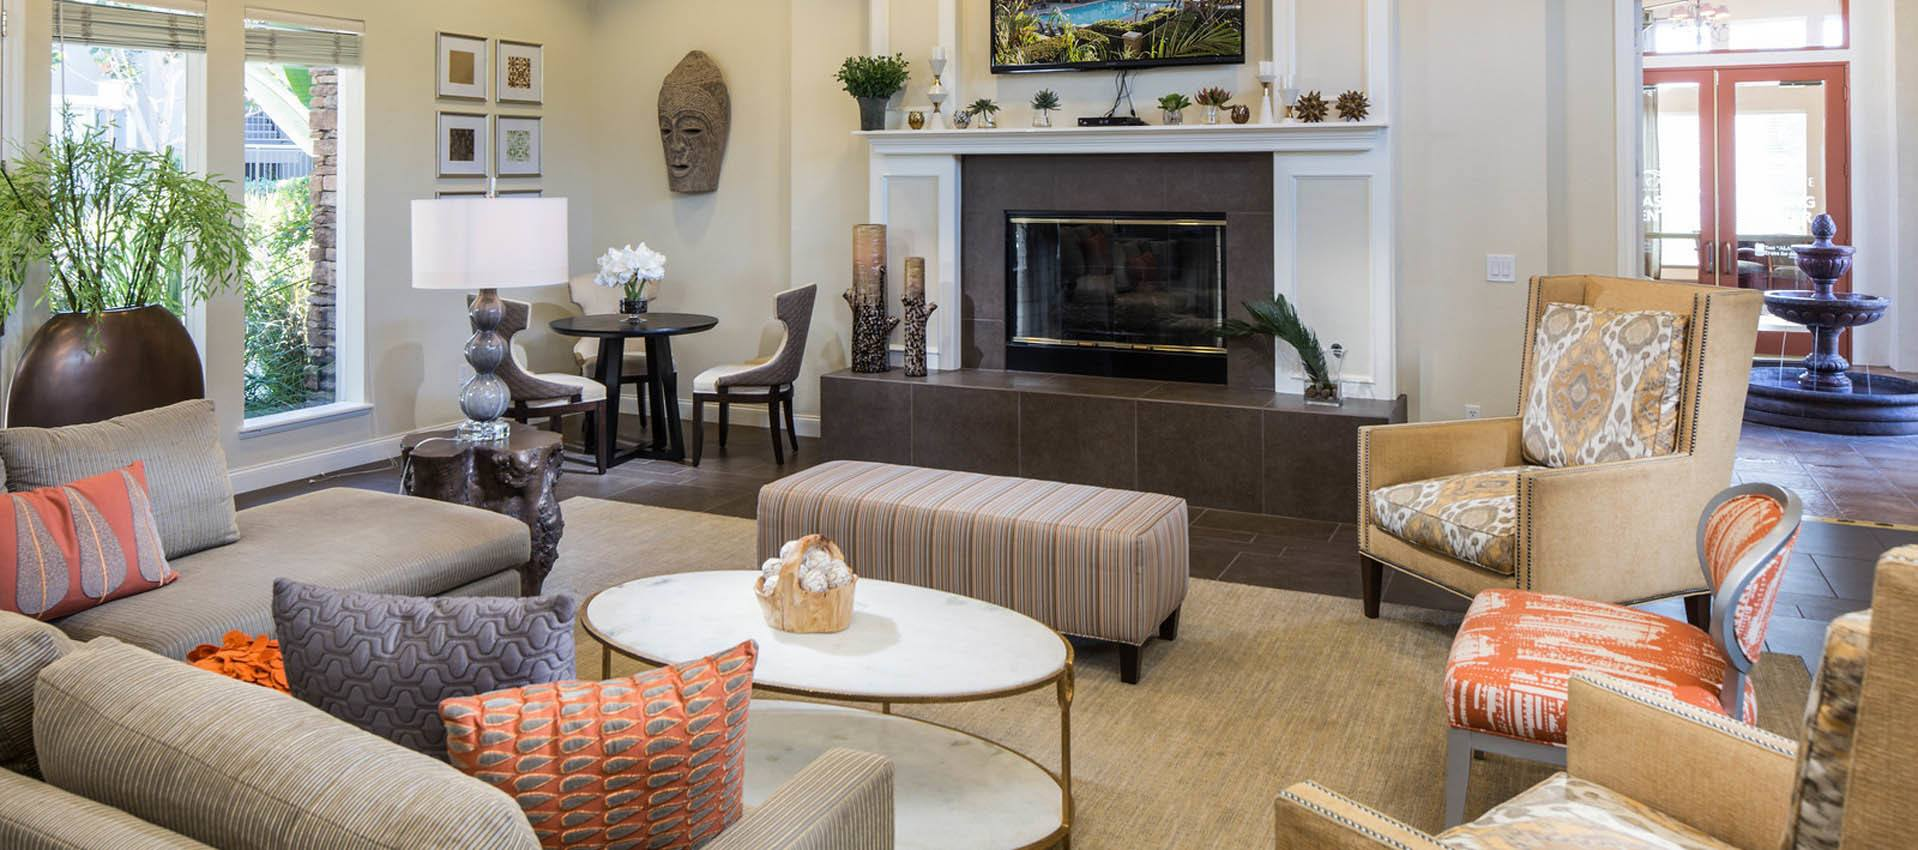 Relax around the fireplace at Alicante Apartment Homes in Aliso Viejo, CA